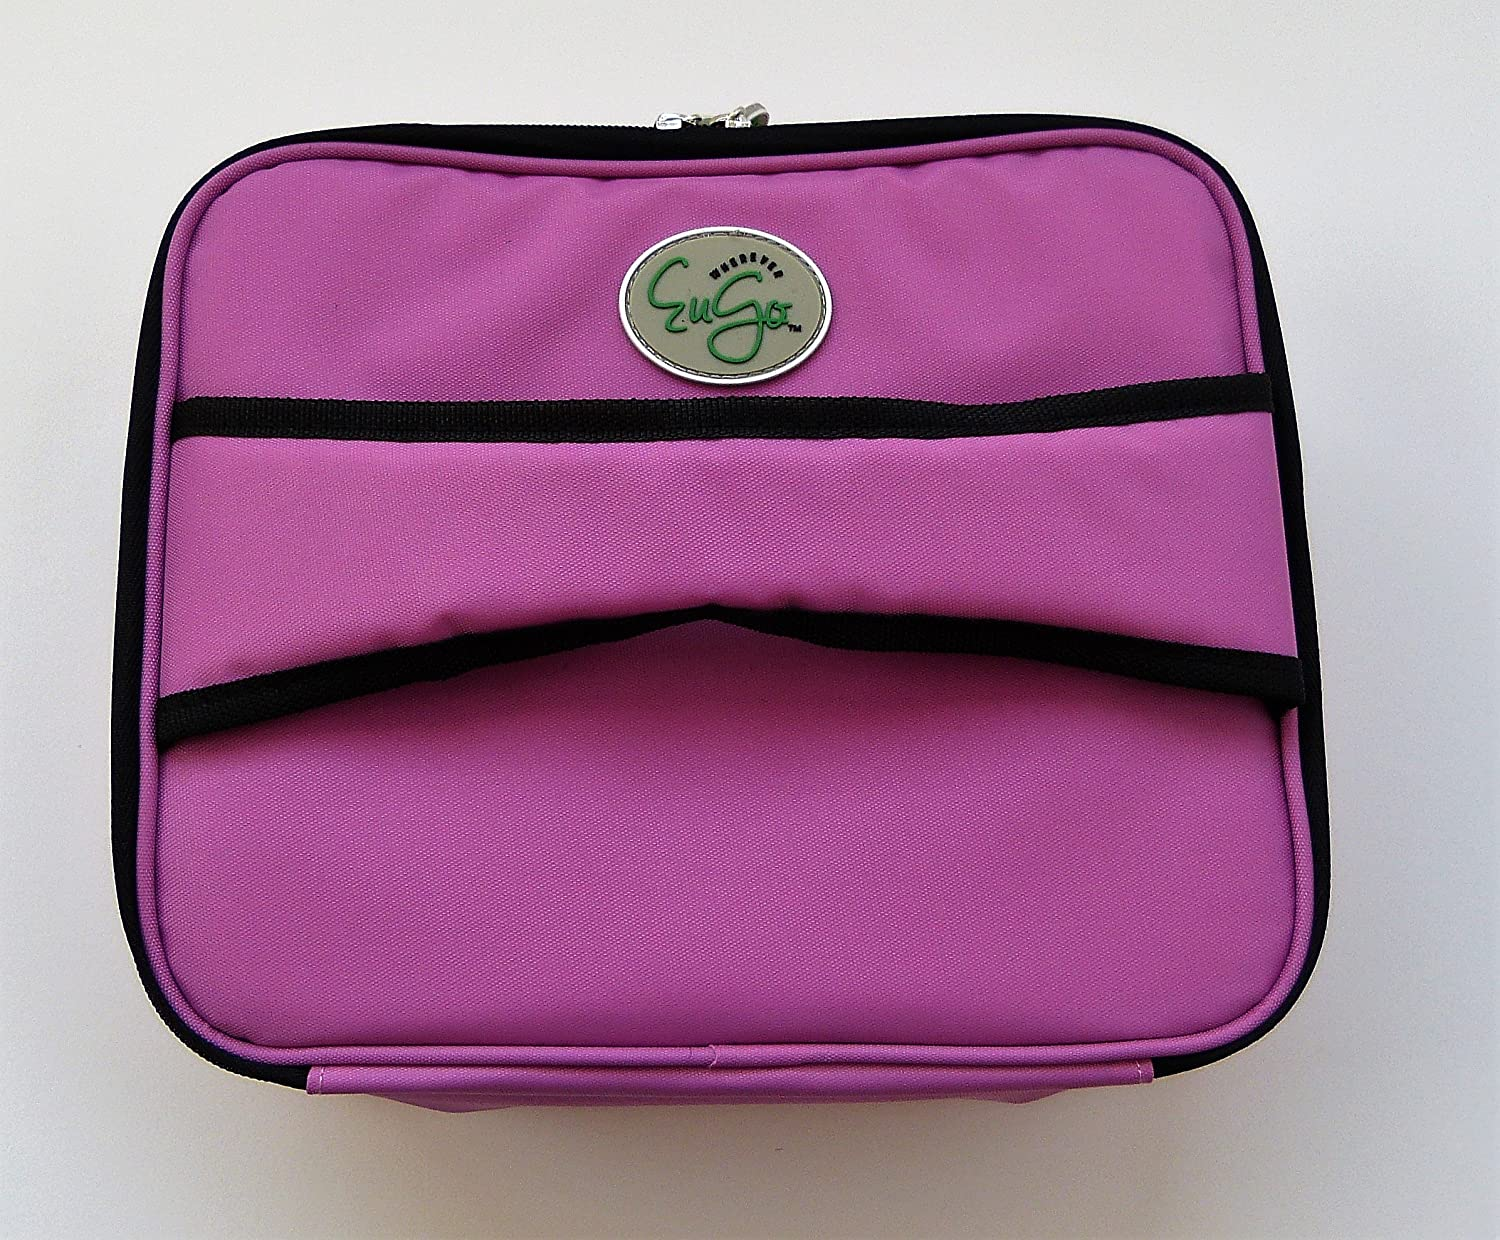 Max 89% OFF Diabetes Supplies Travel Bag and Sport - Organizer Pink At the price of surprise